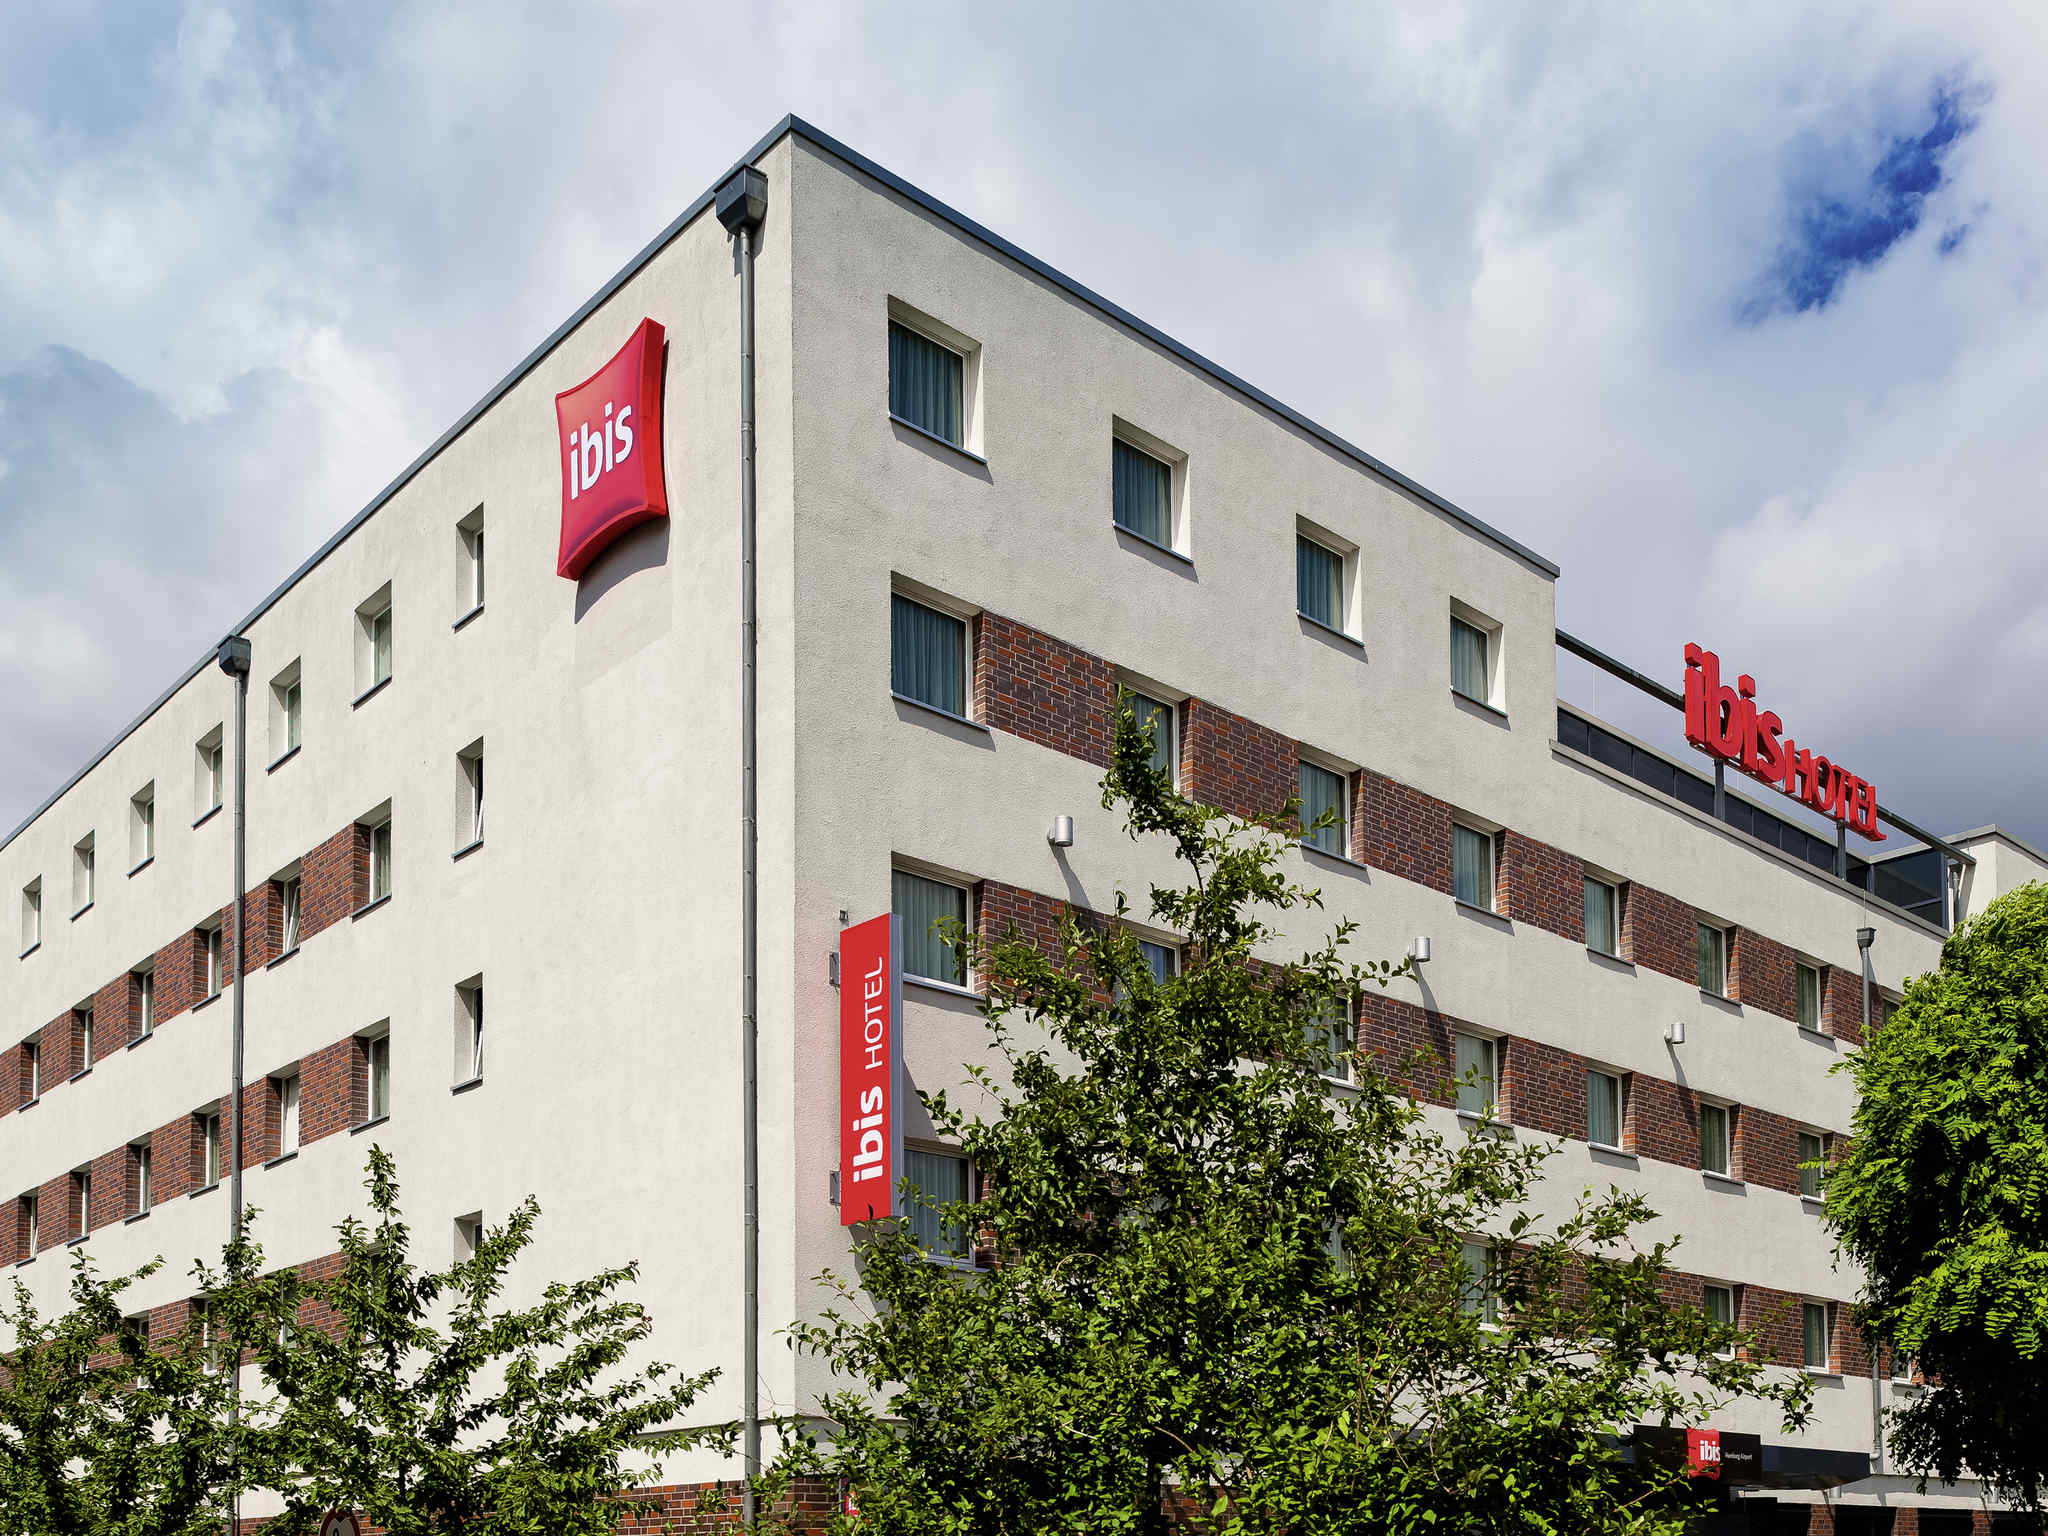 Isestraße Hamburg hotel ibis hamburg airport book your hotel now wifi